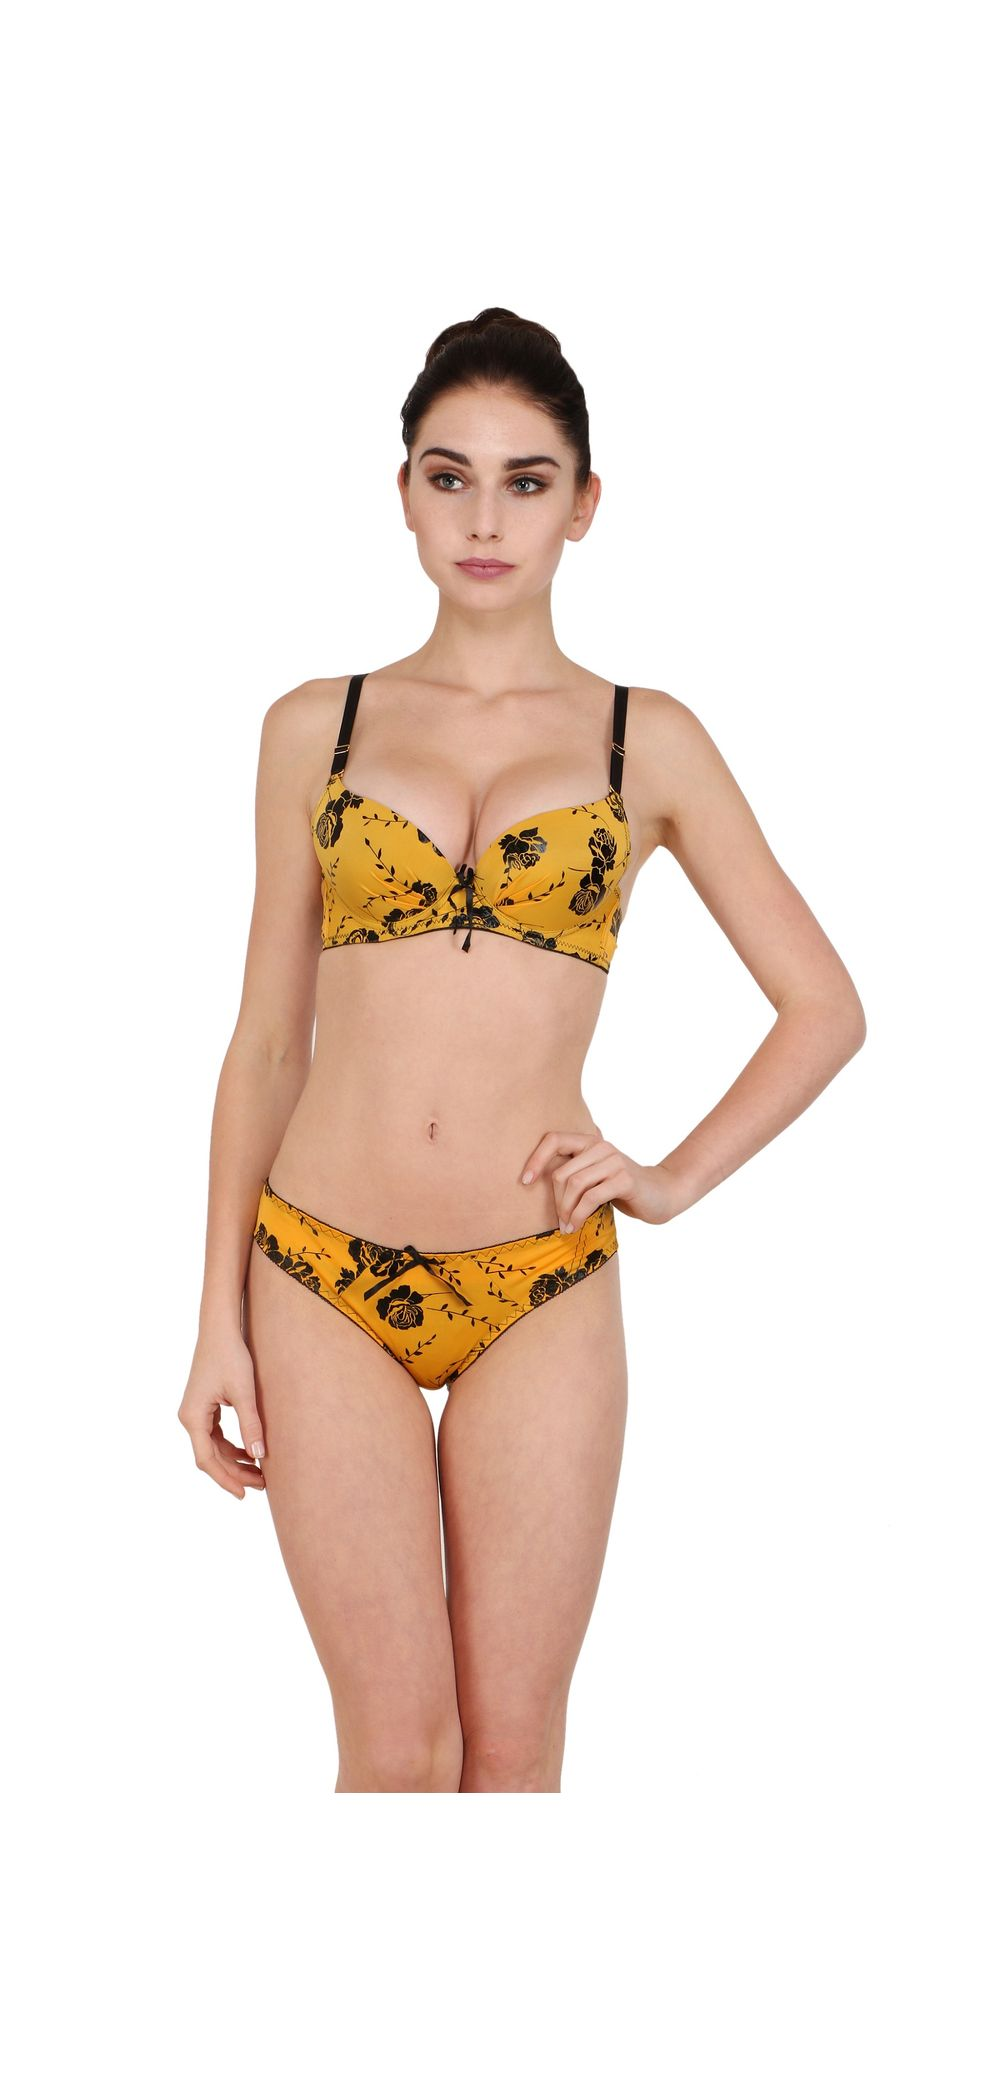 ebc849c22e sold-out-image Sexy Roses Soft Pushup Bra   Stainless Bikini Panty Yellow  Set. ‹ ›